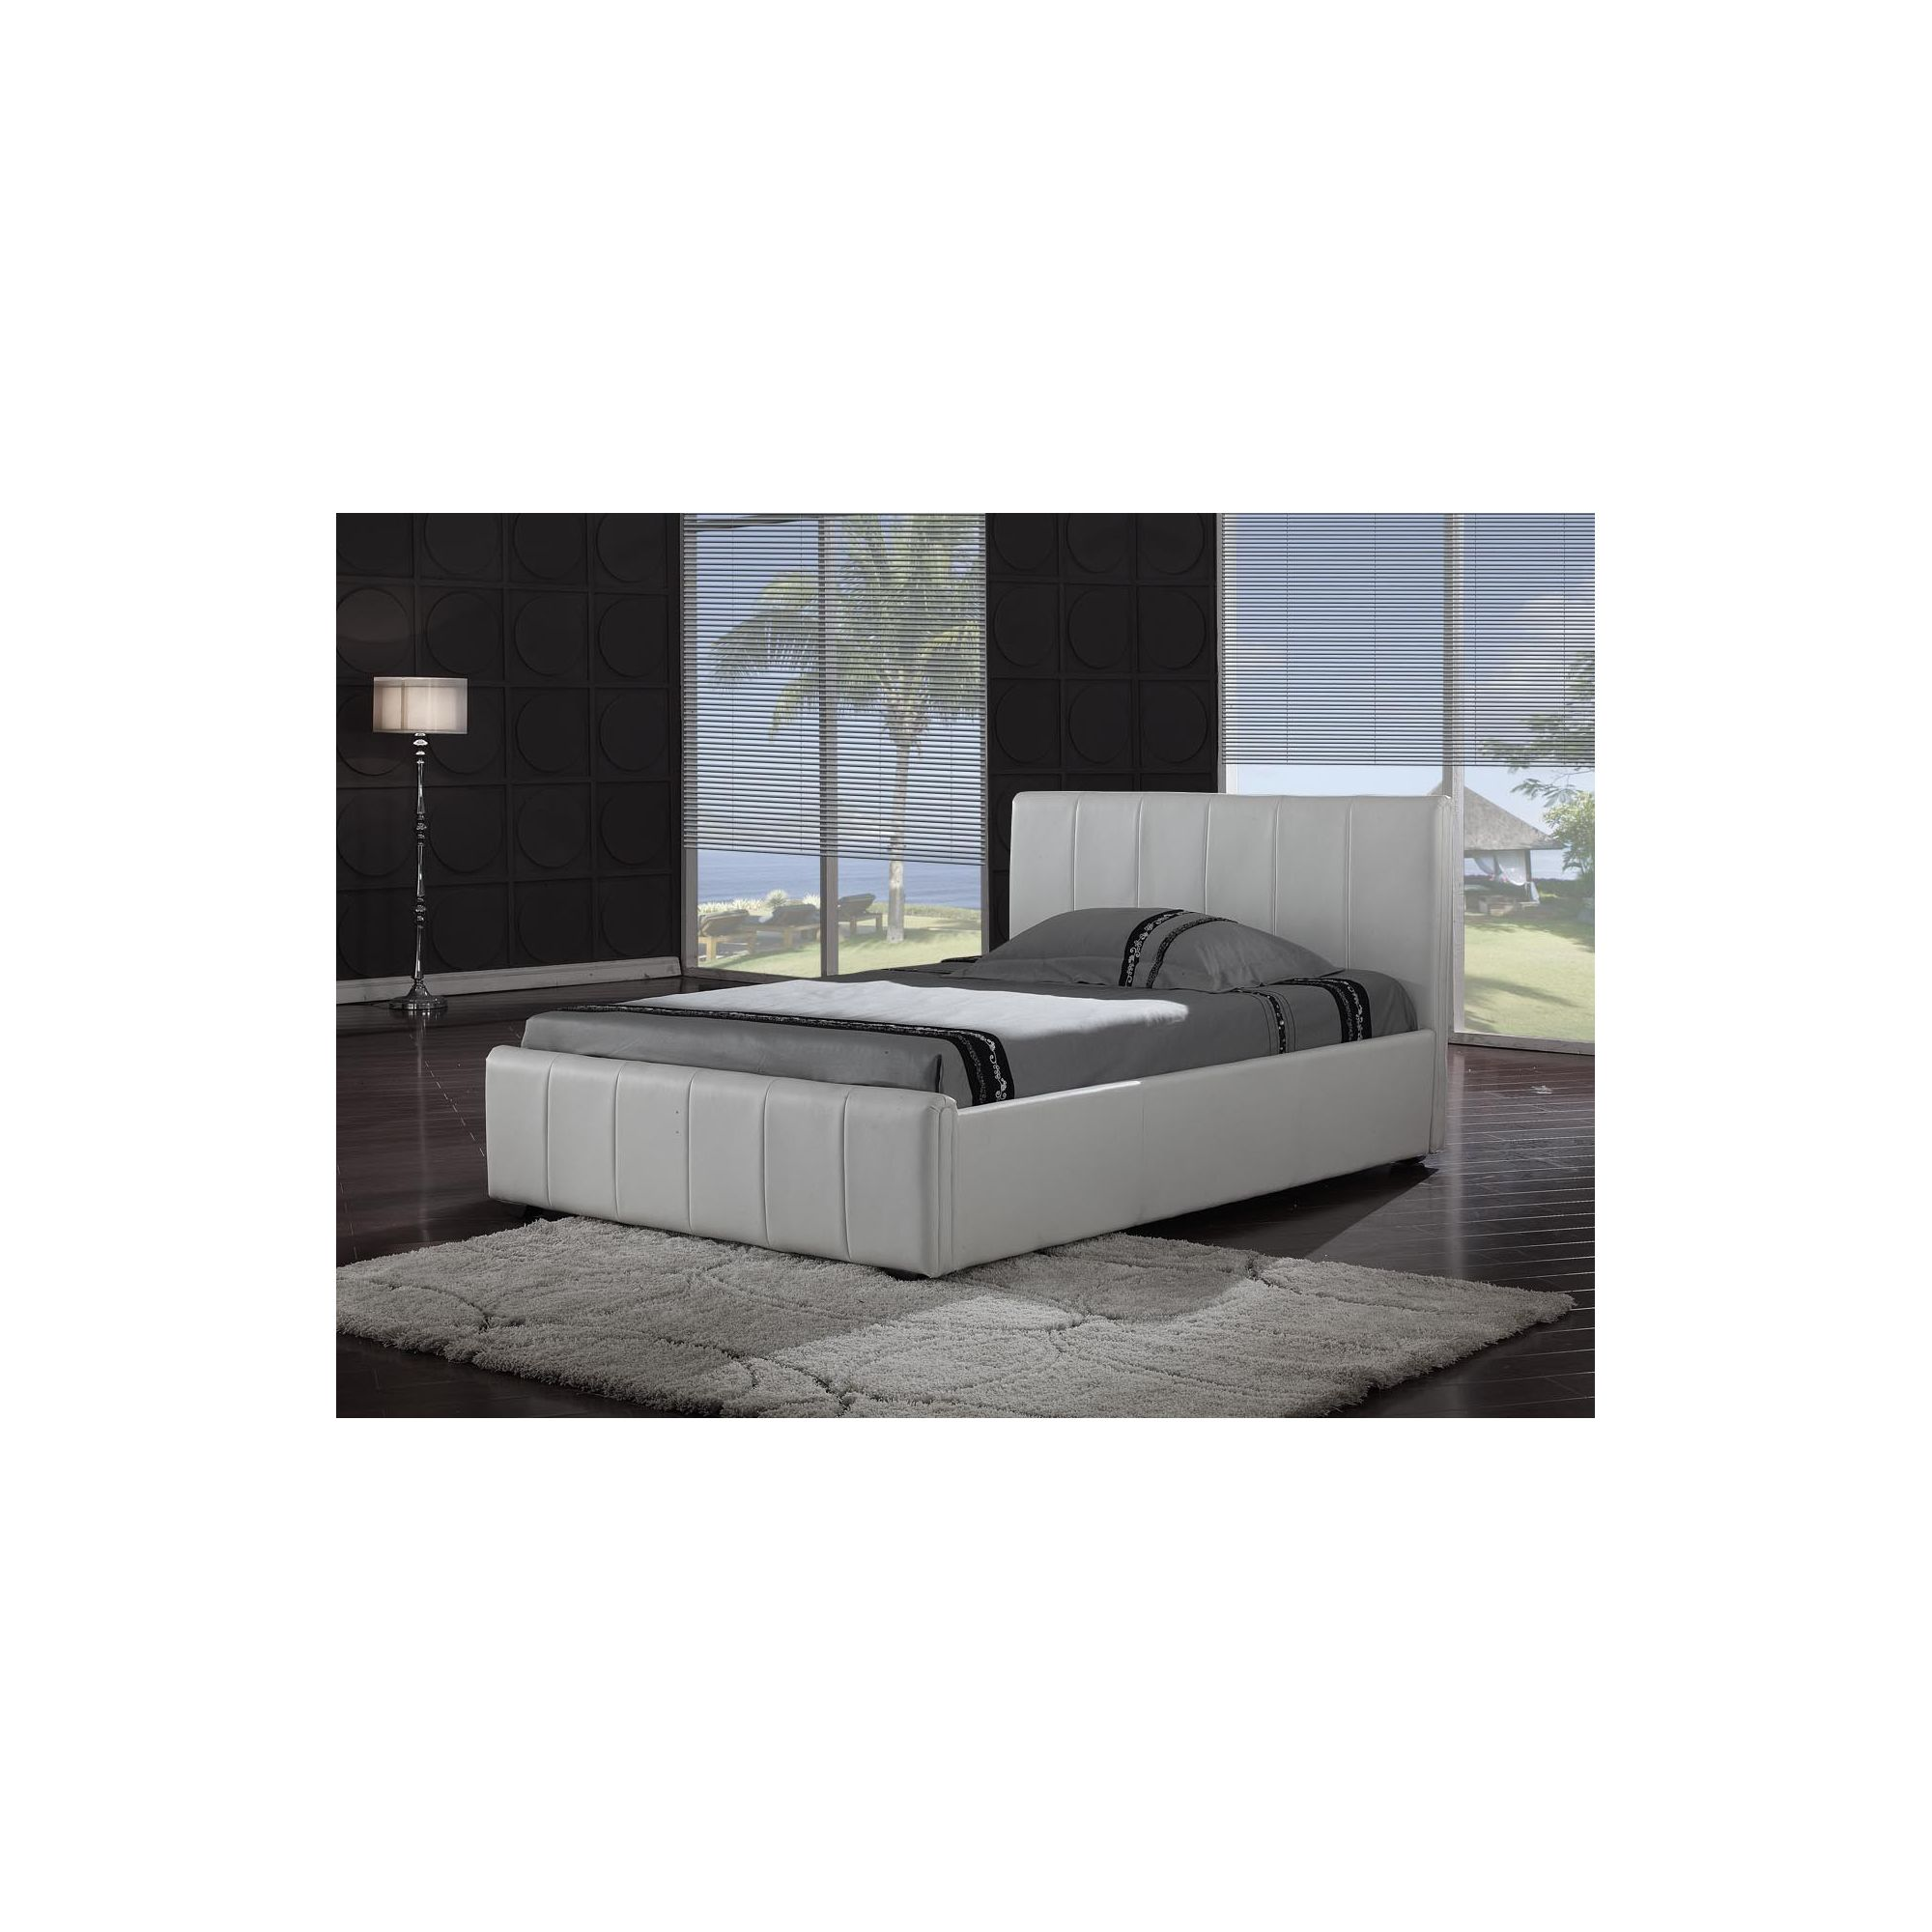 Interiors 2 suit Pisa Bedframe - Black - King at Tescos Direct